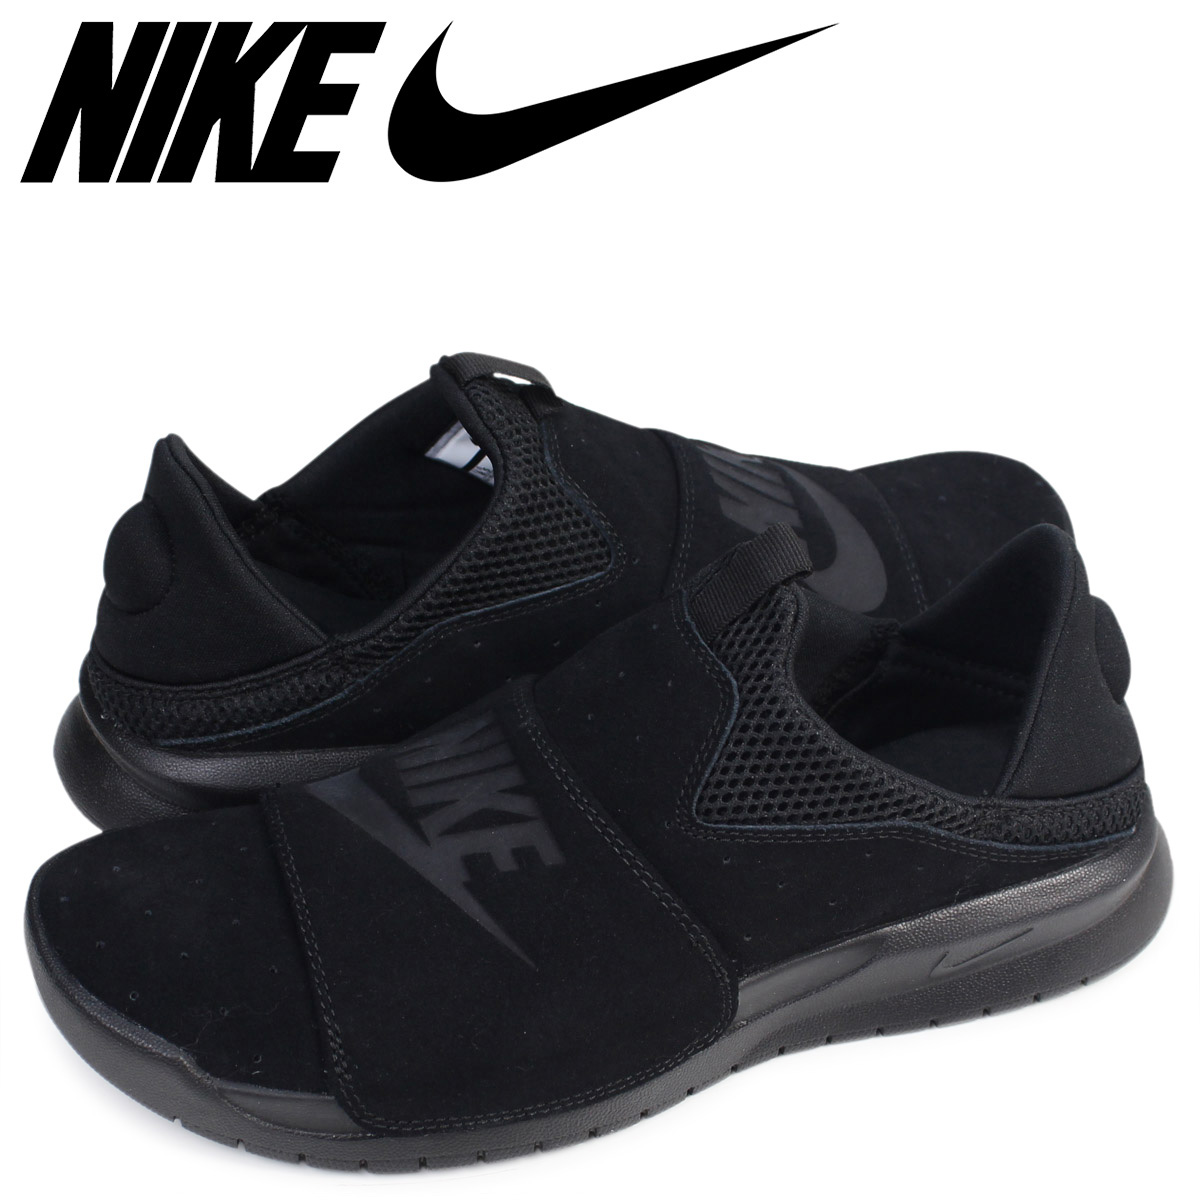 Nike NIKE べ ナッシスリップスニーカー BENASSI SLIP 882,410-003 slip-ons men shoes black  [8/5 Shinnyu load]